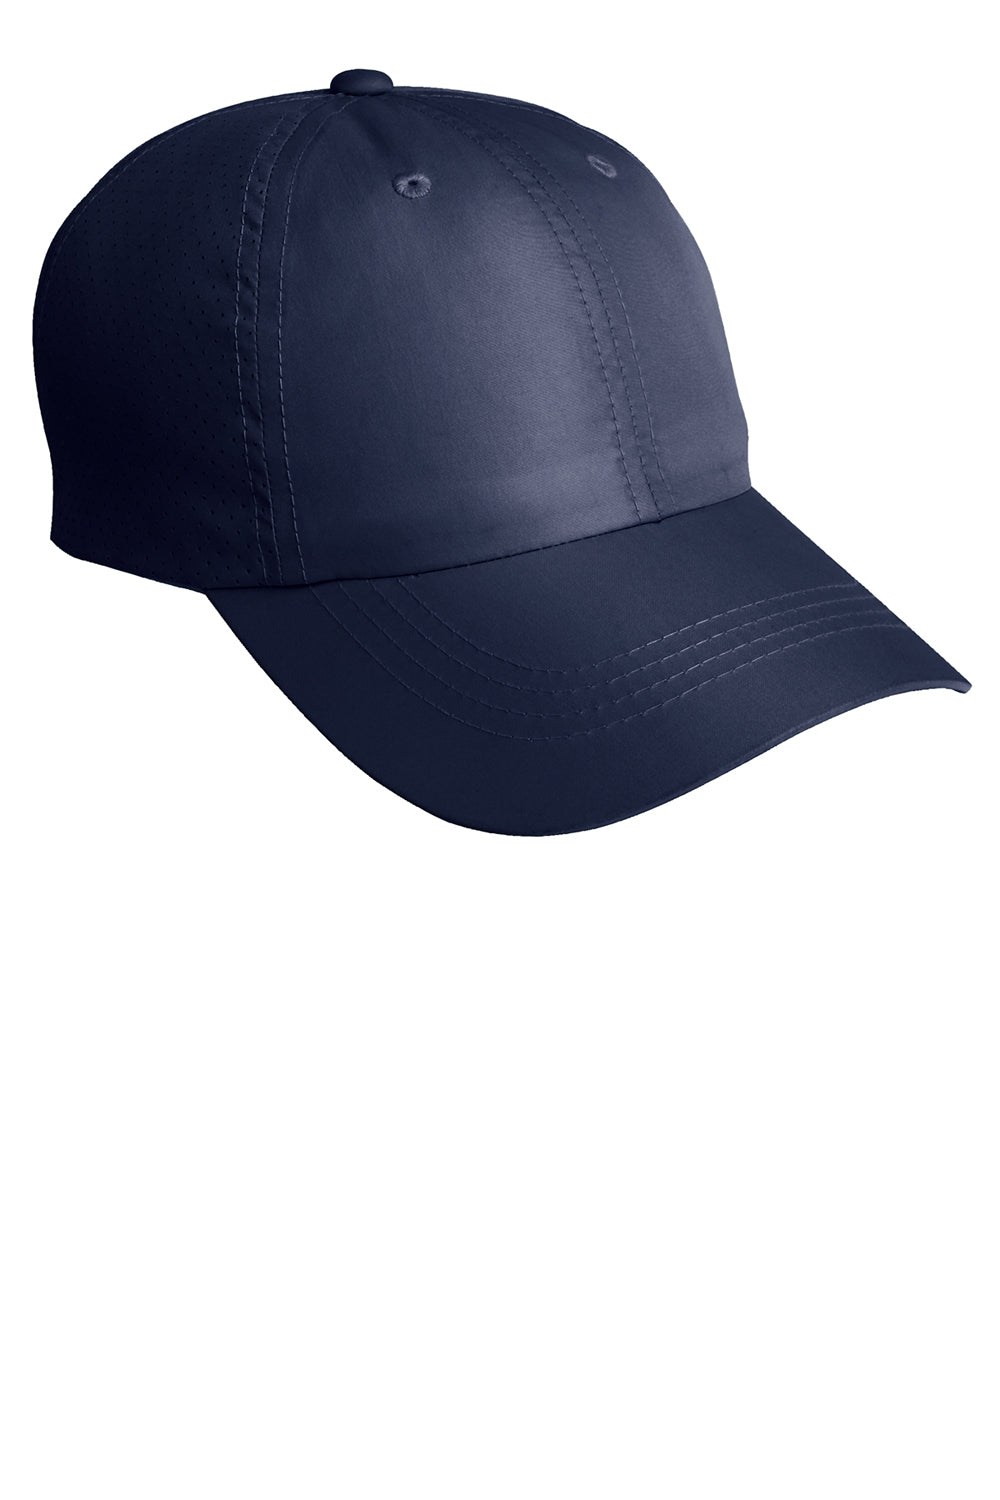 Port Authority C821 Mens Moisture Wicking Adjustable Hat Navy Blue Front